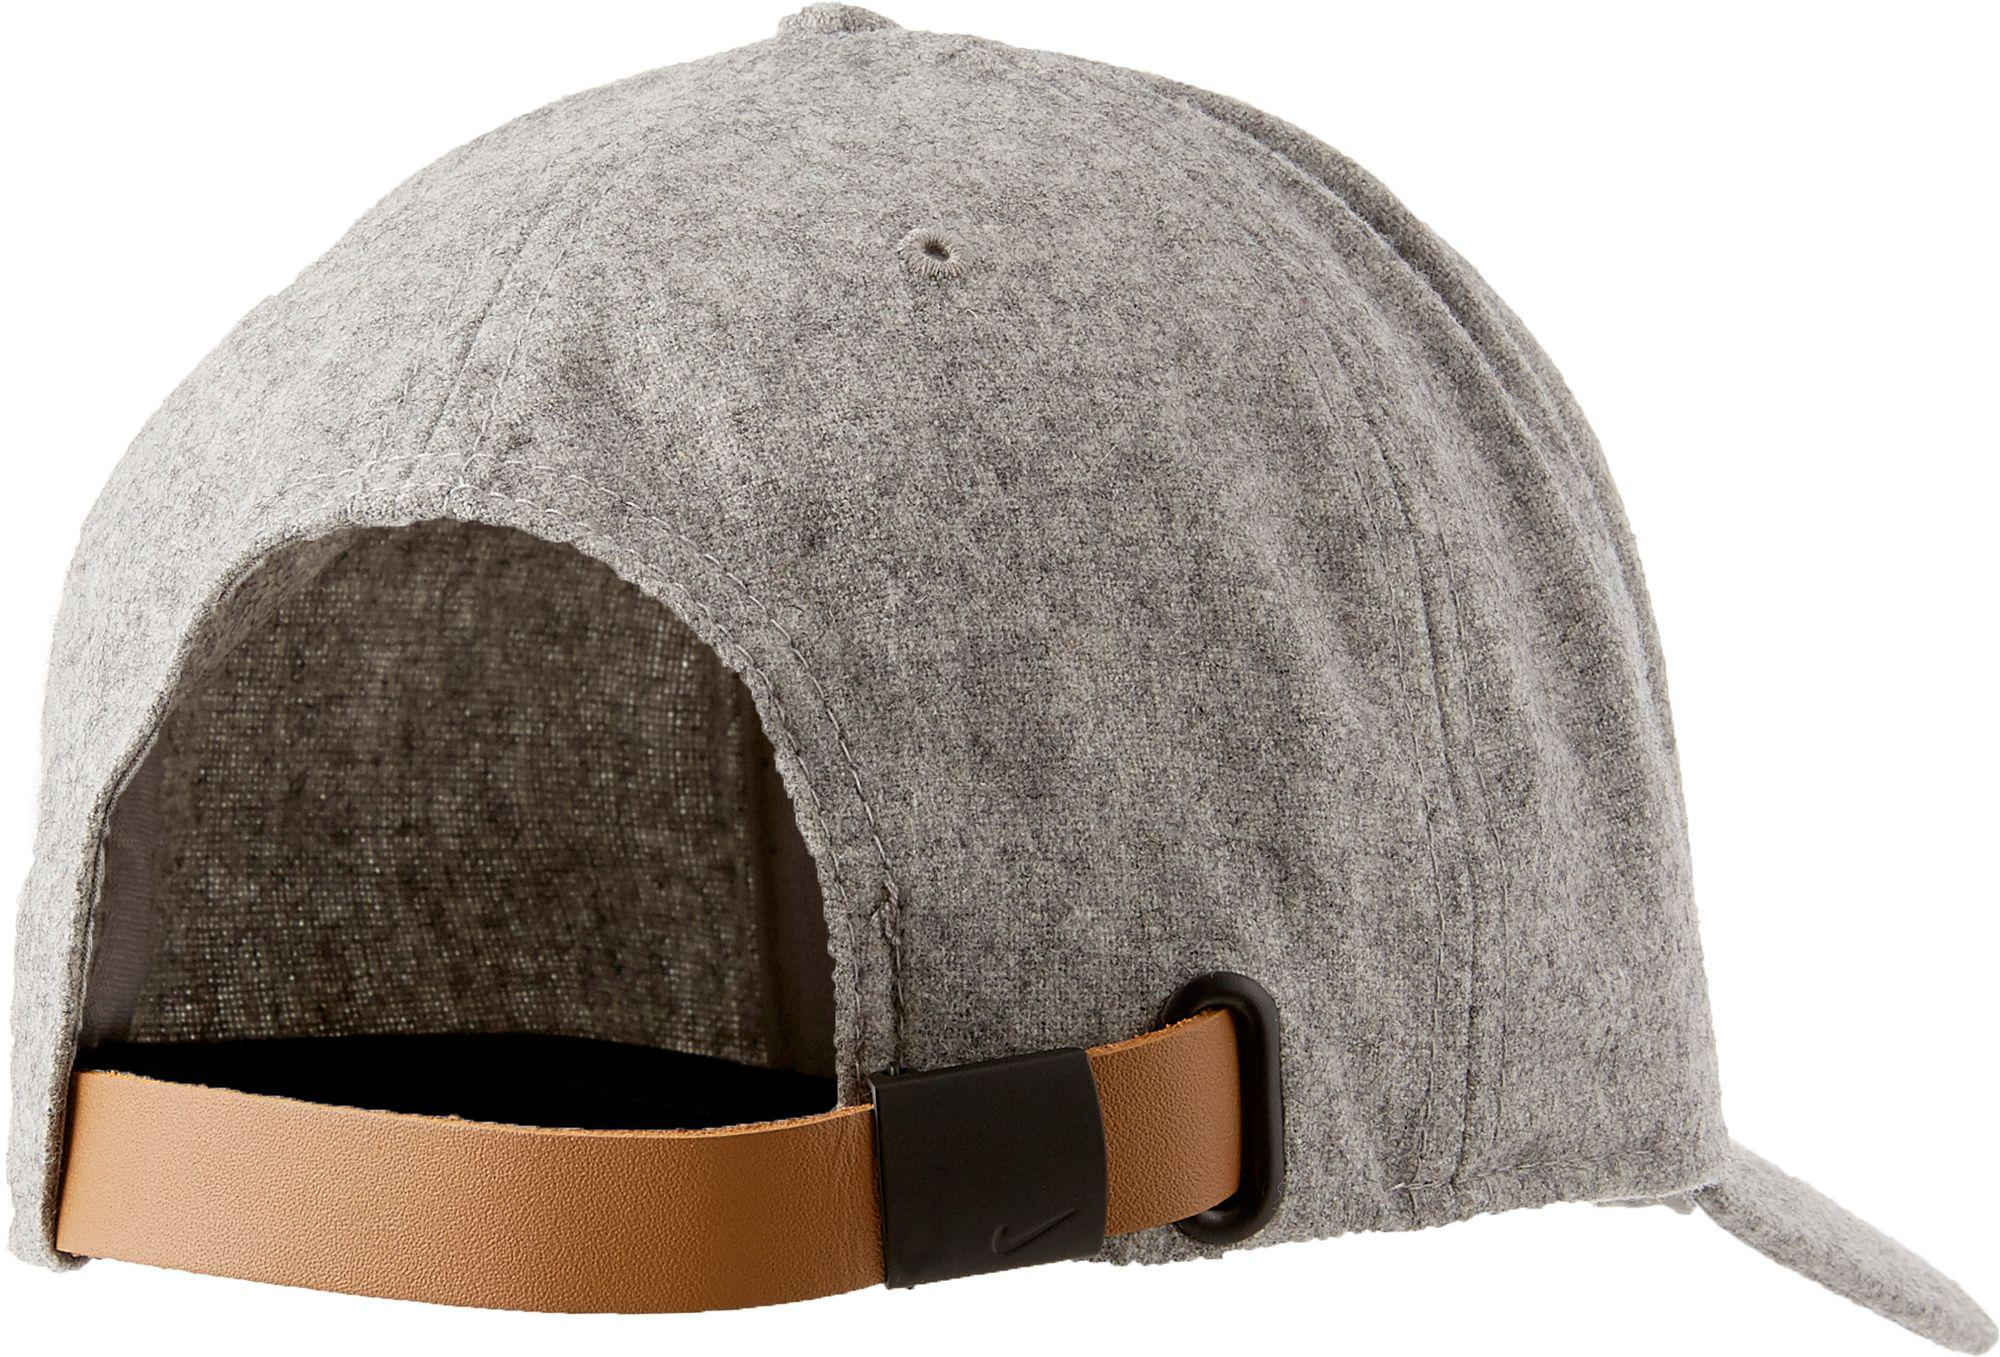 Lyst - Nike Classic99 Wool Golf Hat in Gray for Men dccdbb057e3